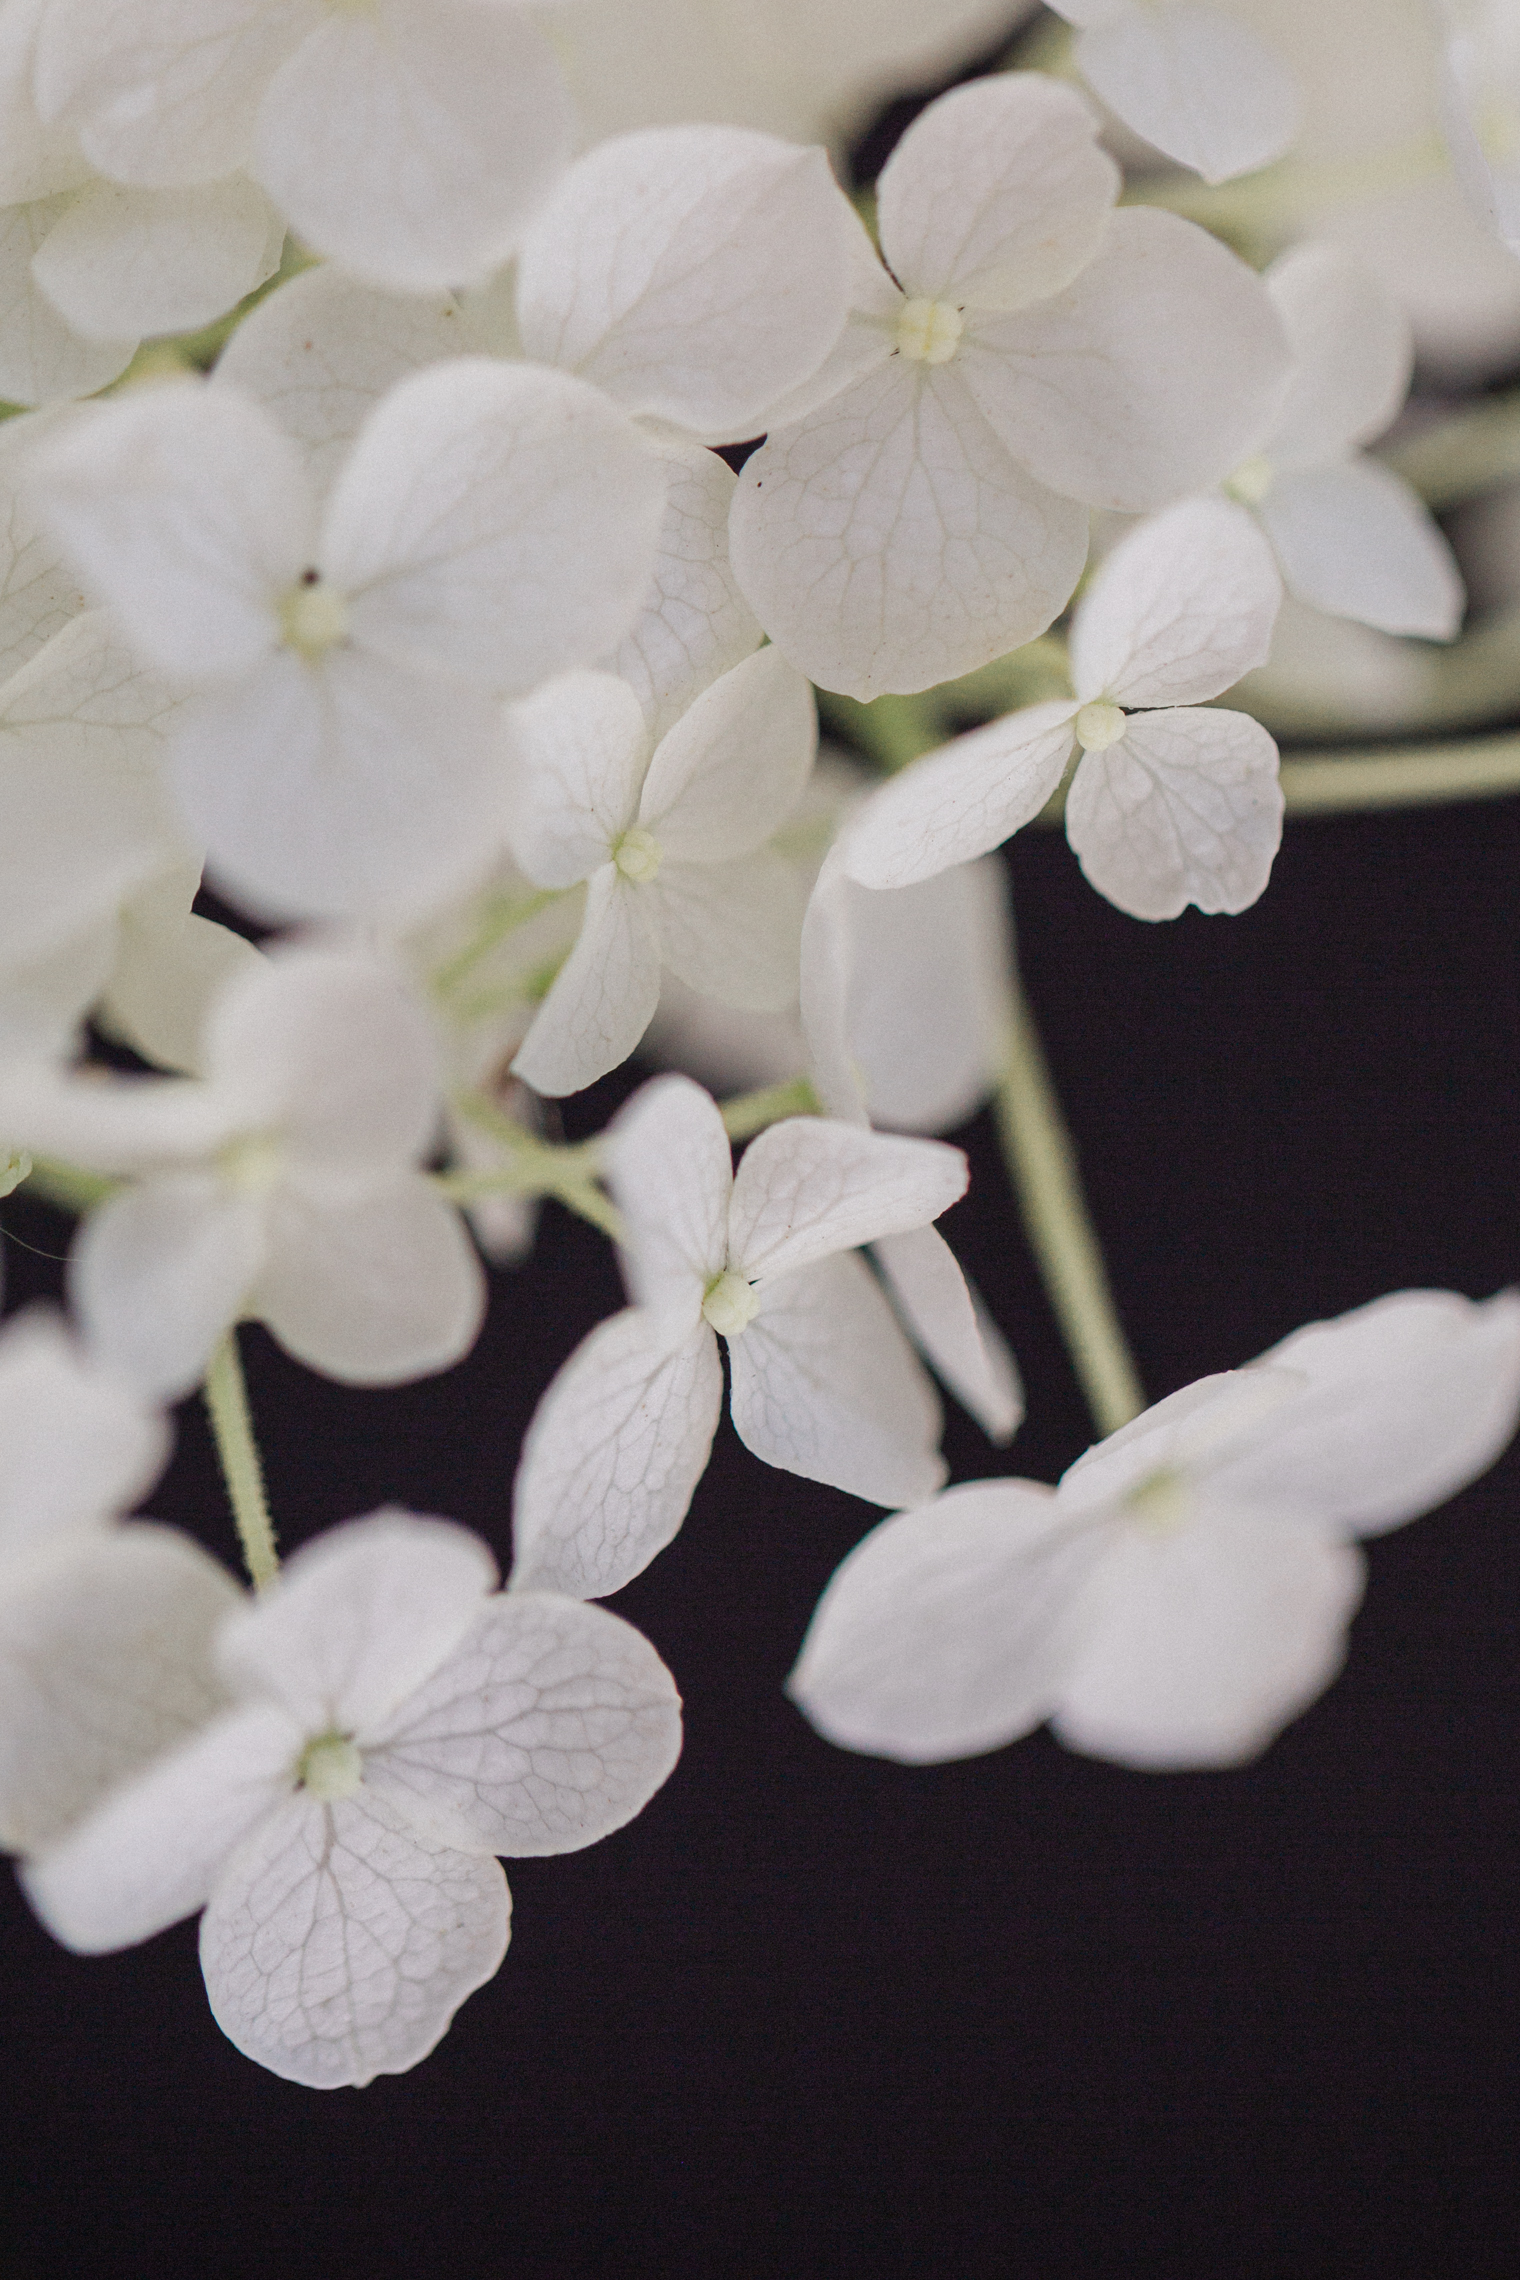 Blooming Brilliant Bouquets - White Hydrangea